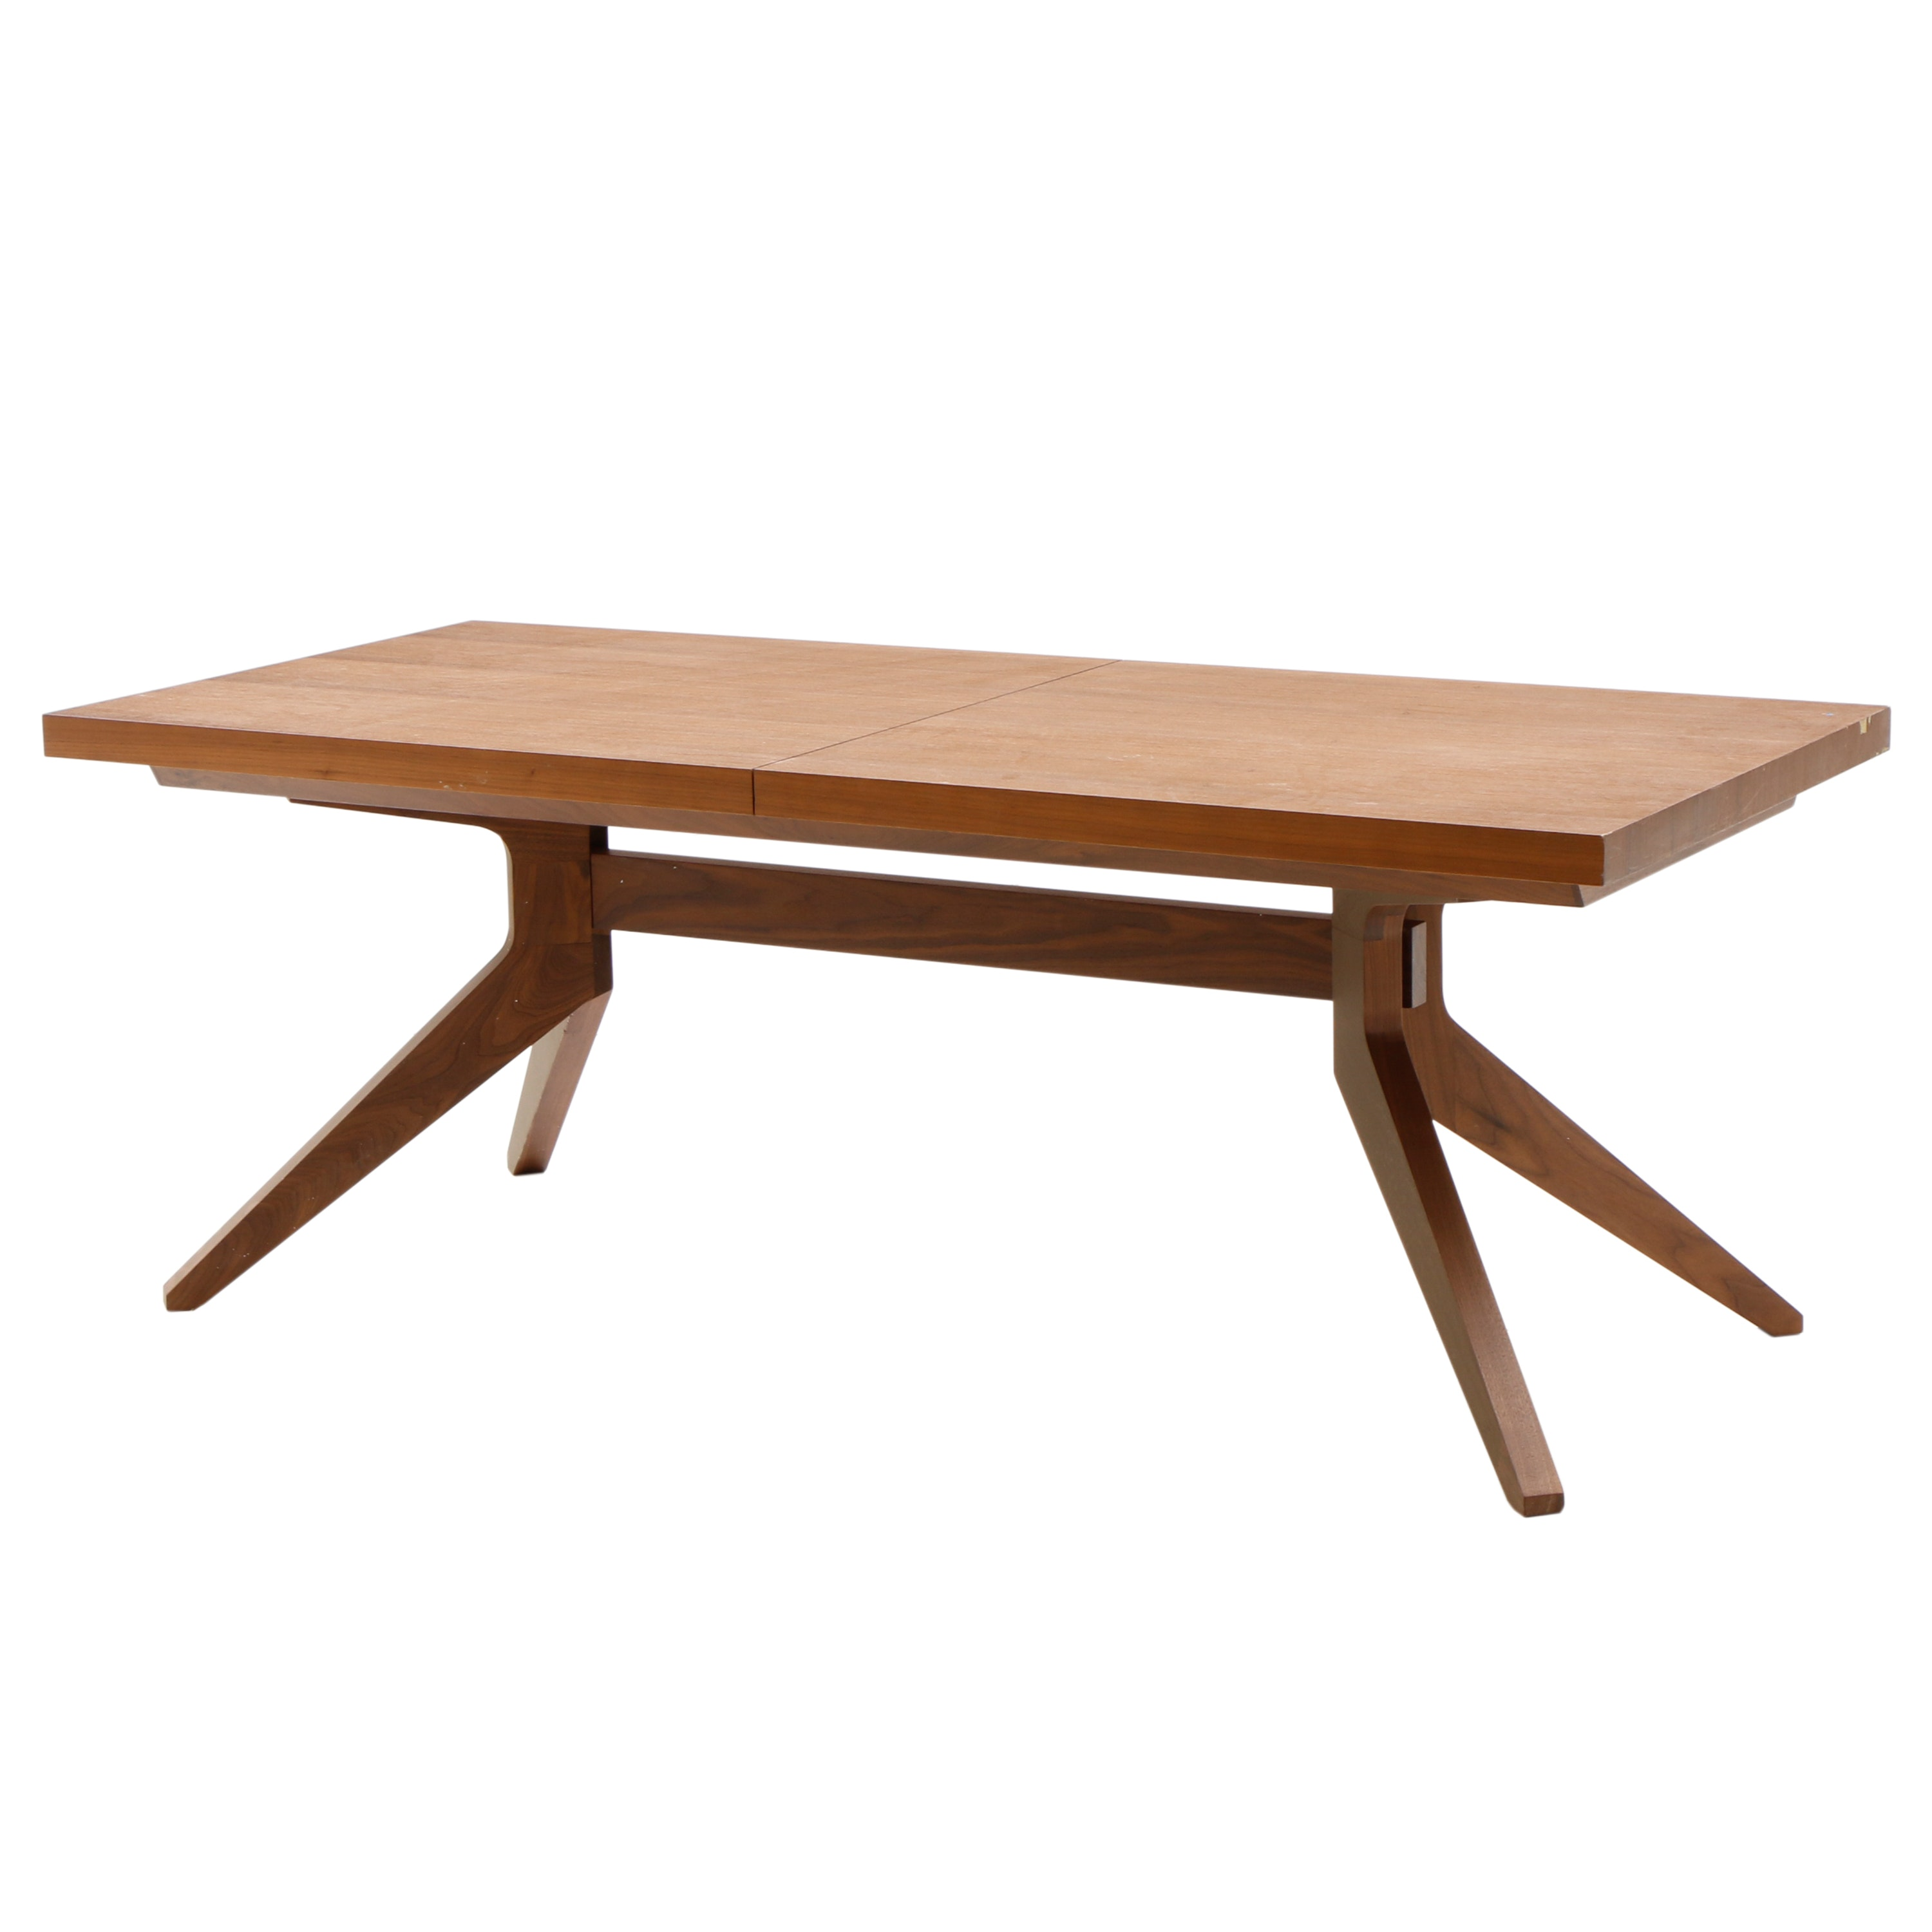 """Contemporary Oak """"Cross Extension Table"""" by Matthew Hilton for Case"""